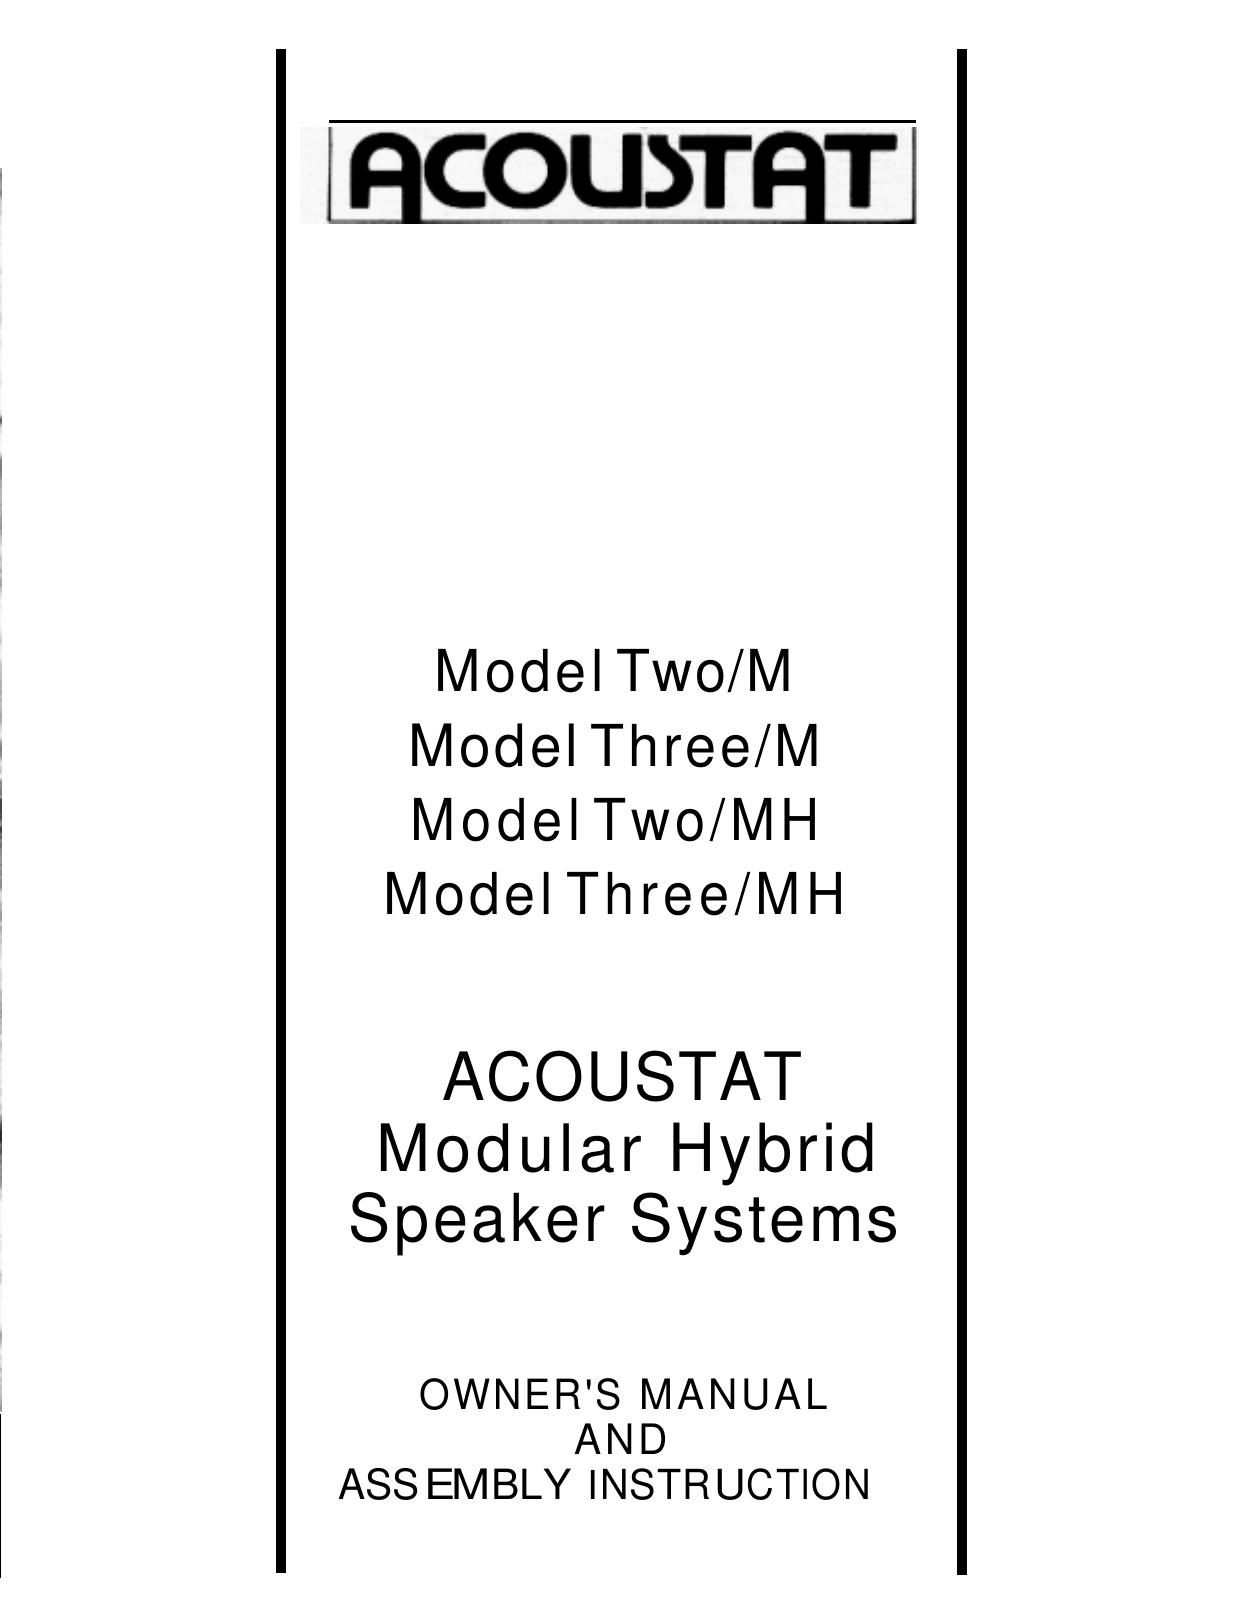 Acoustat Model 3 M Owners Manual